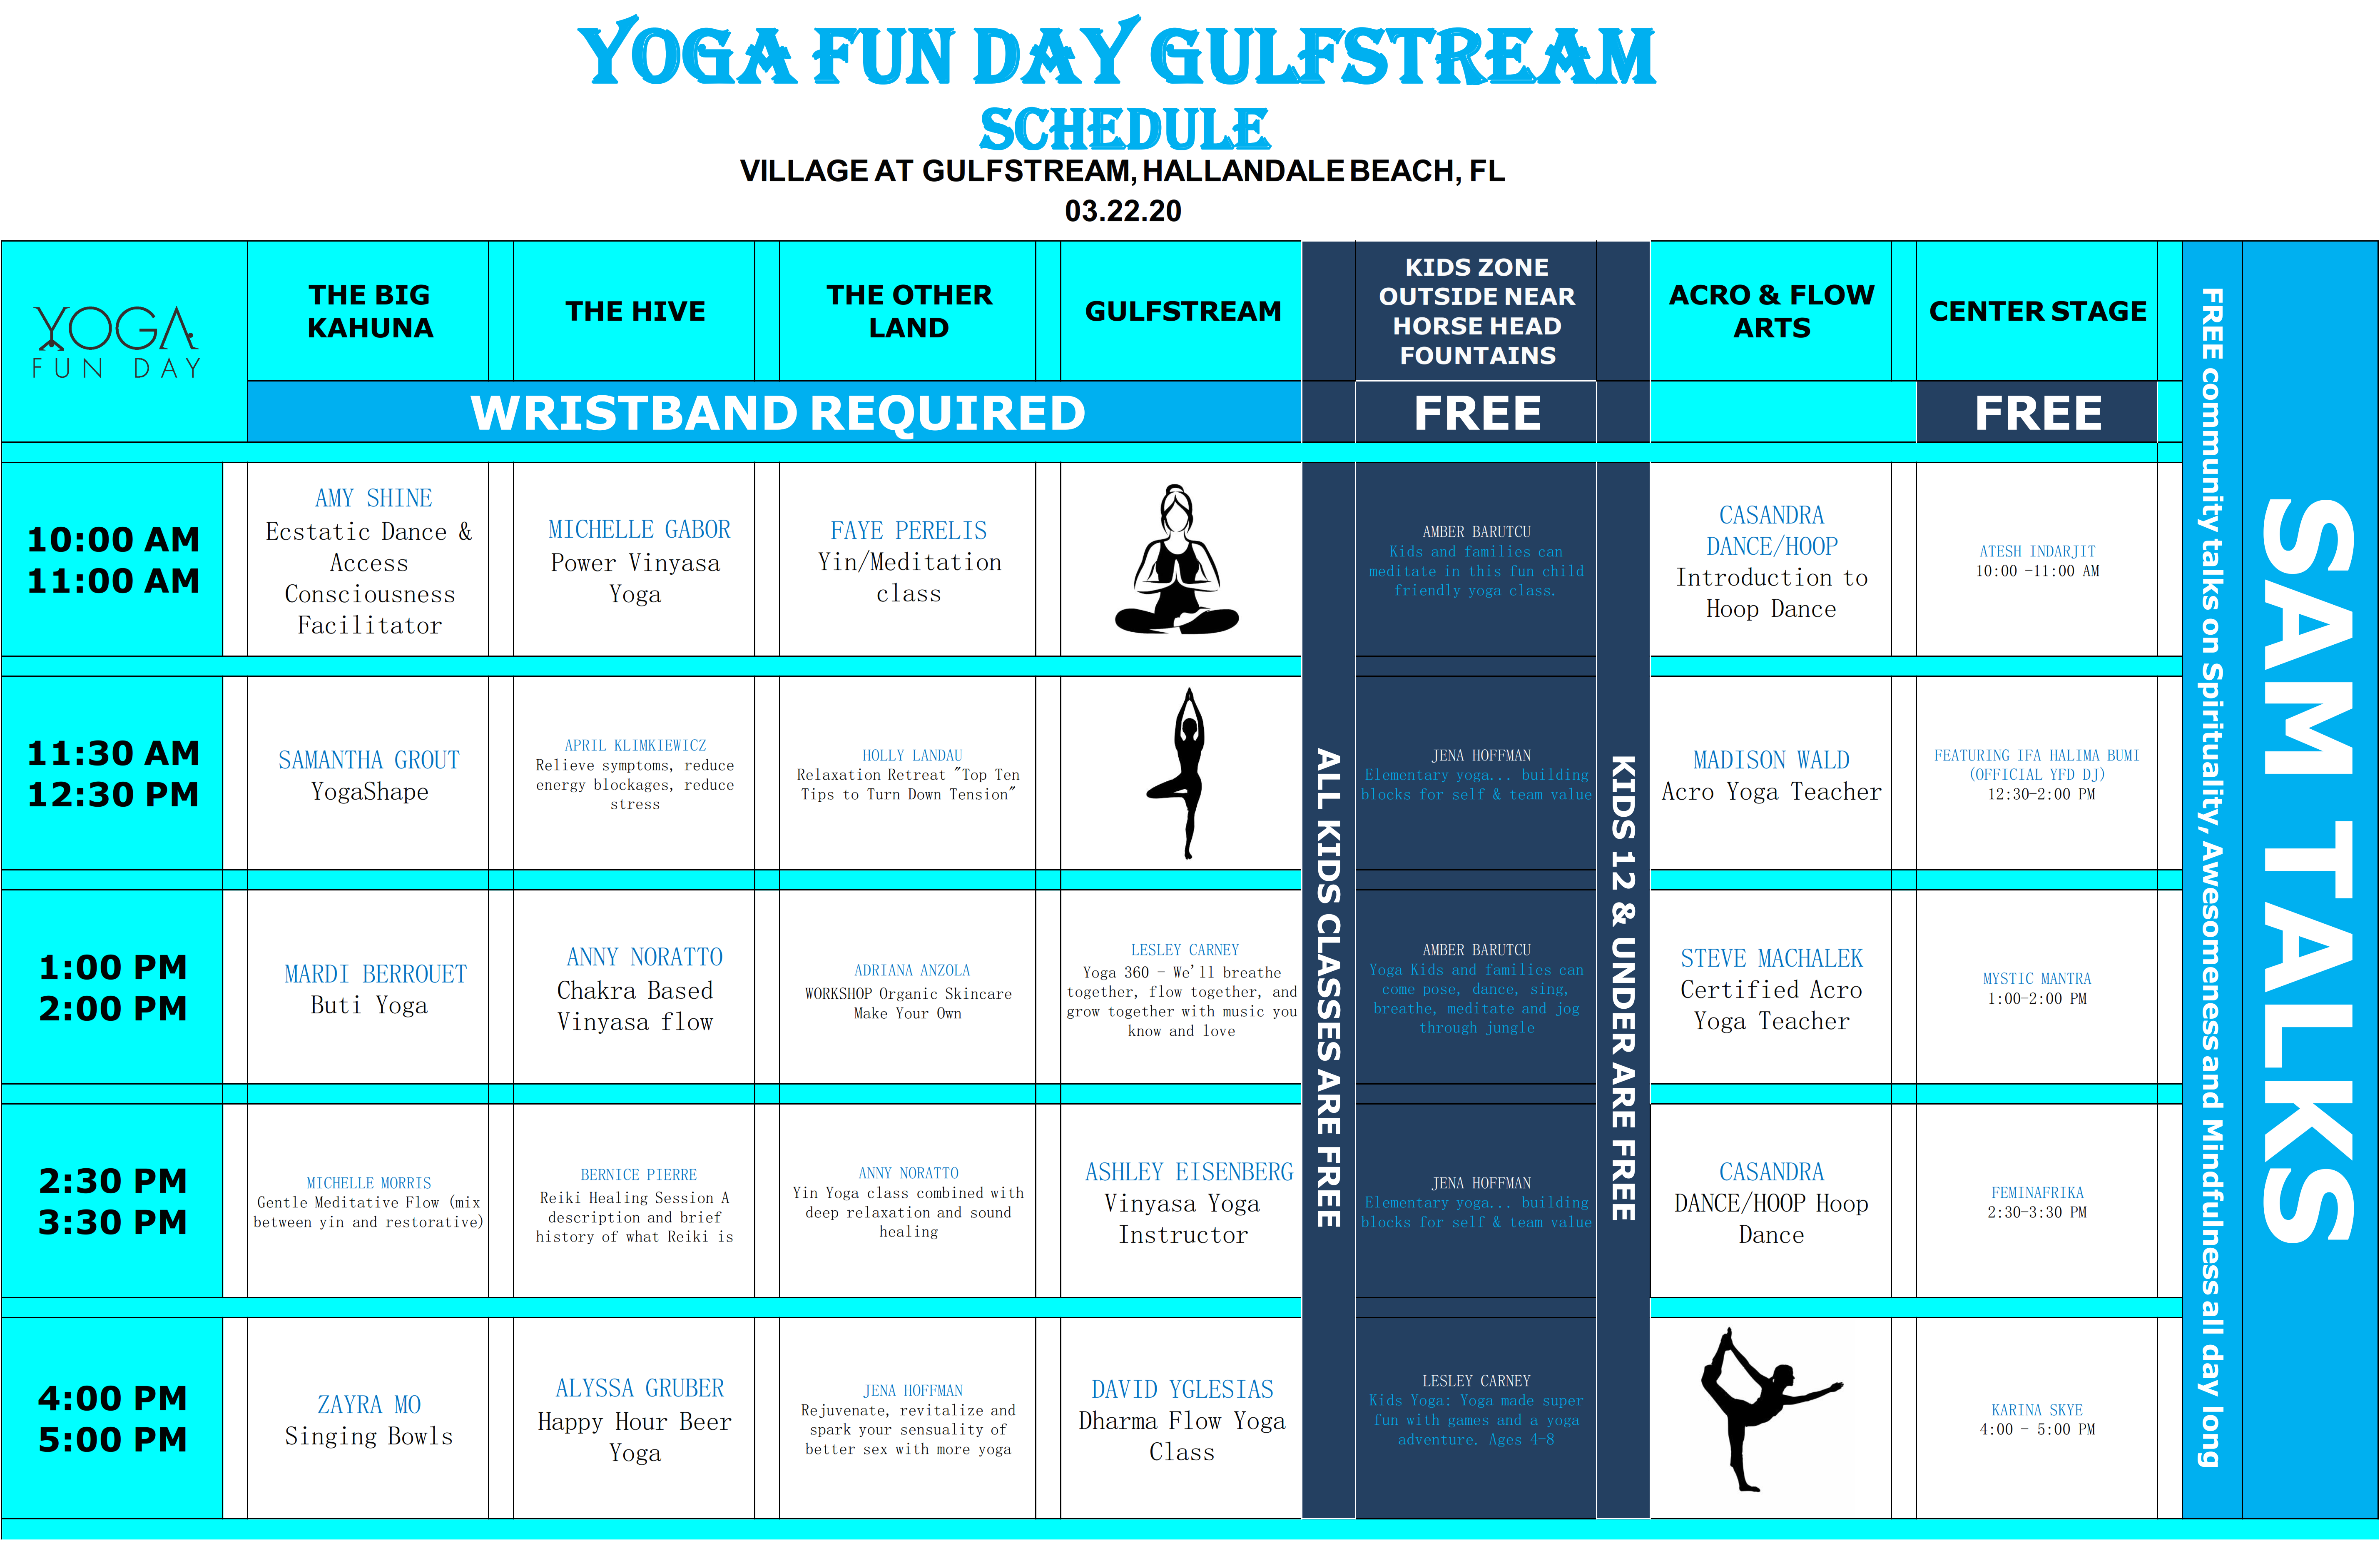 Yoga Festival Yoga Events South Florida Yoga Gulfstream Yoga Teachers Schedule